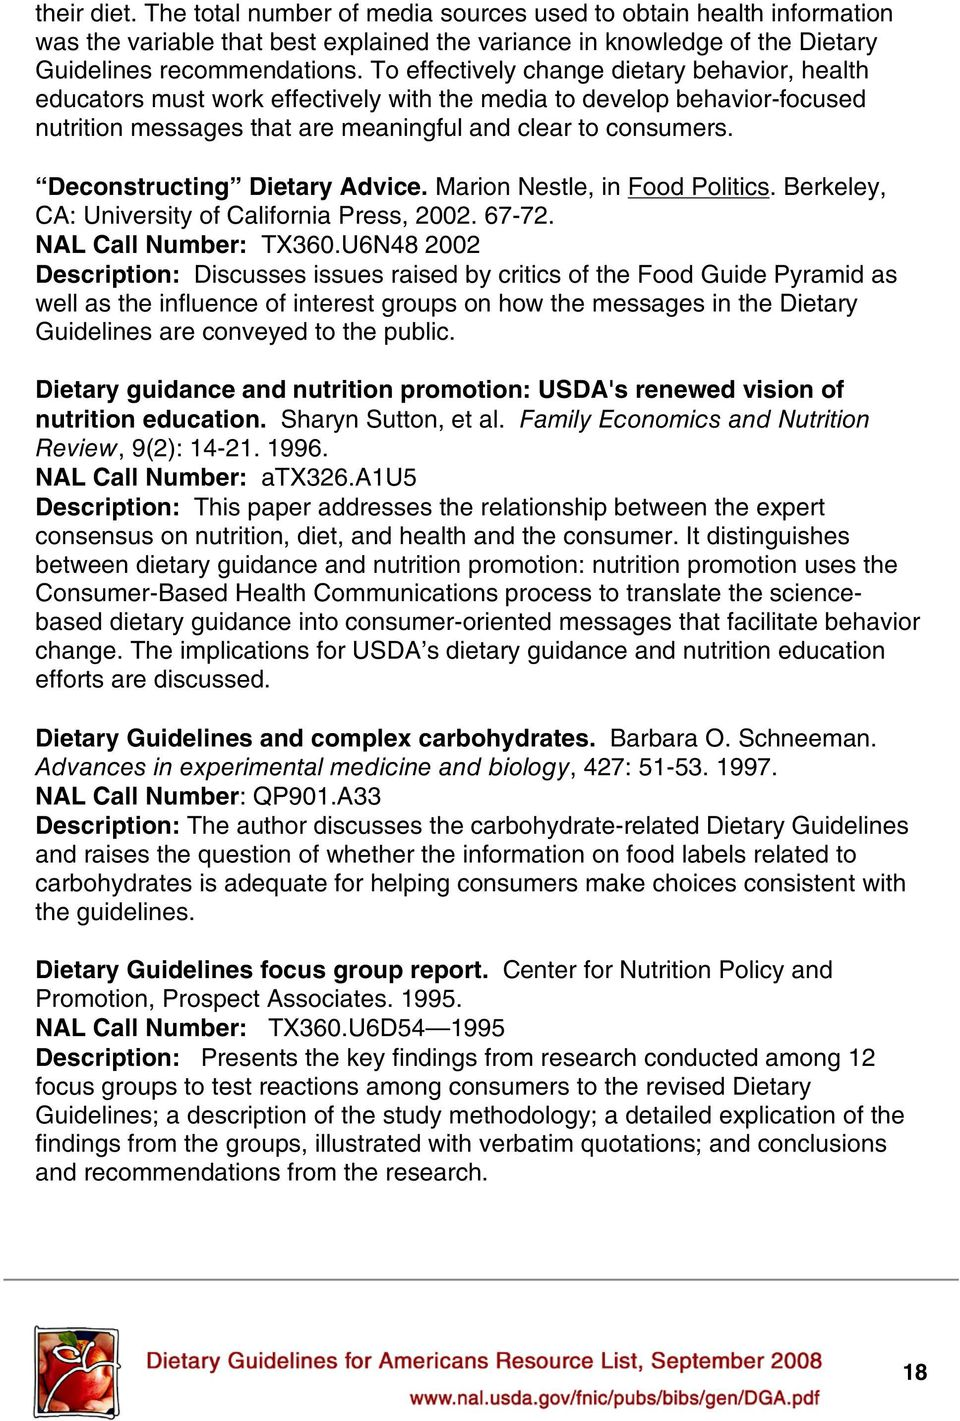 Deconstructing Dietary Advice. Marion Nestle, in Food Politics. Berkeley, CA: University of California Press, 2002. 67-72. NAL Call Number: TX360.